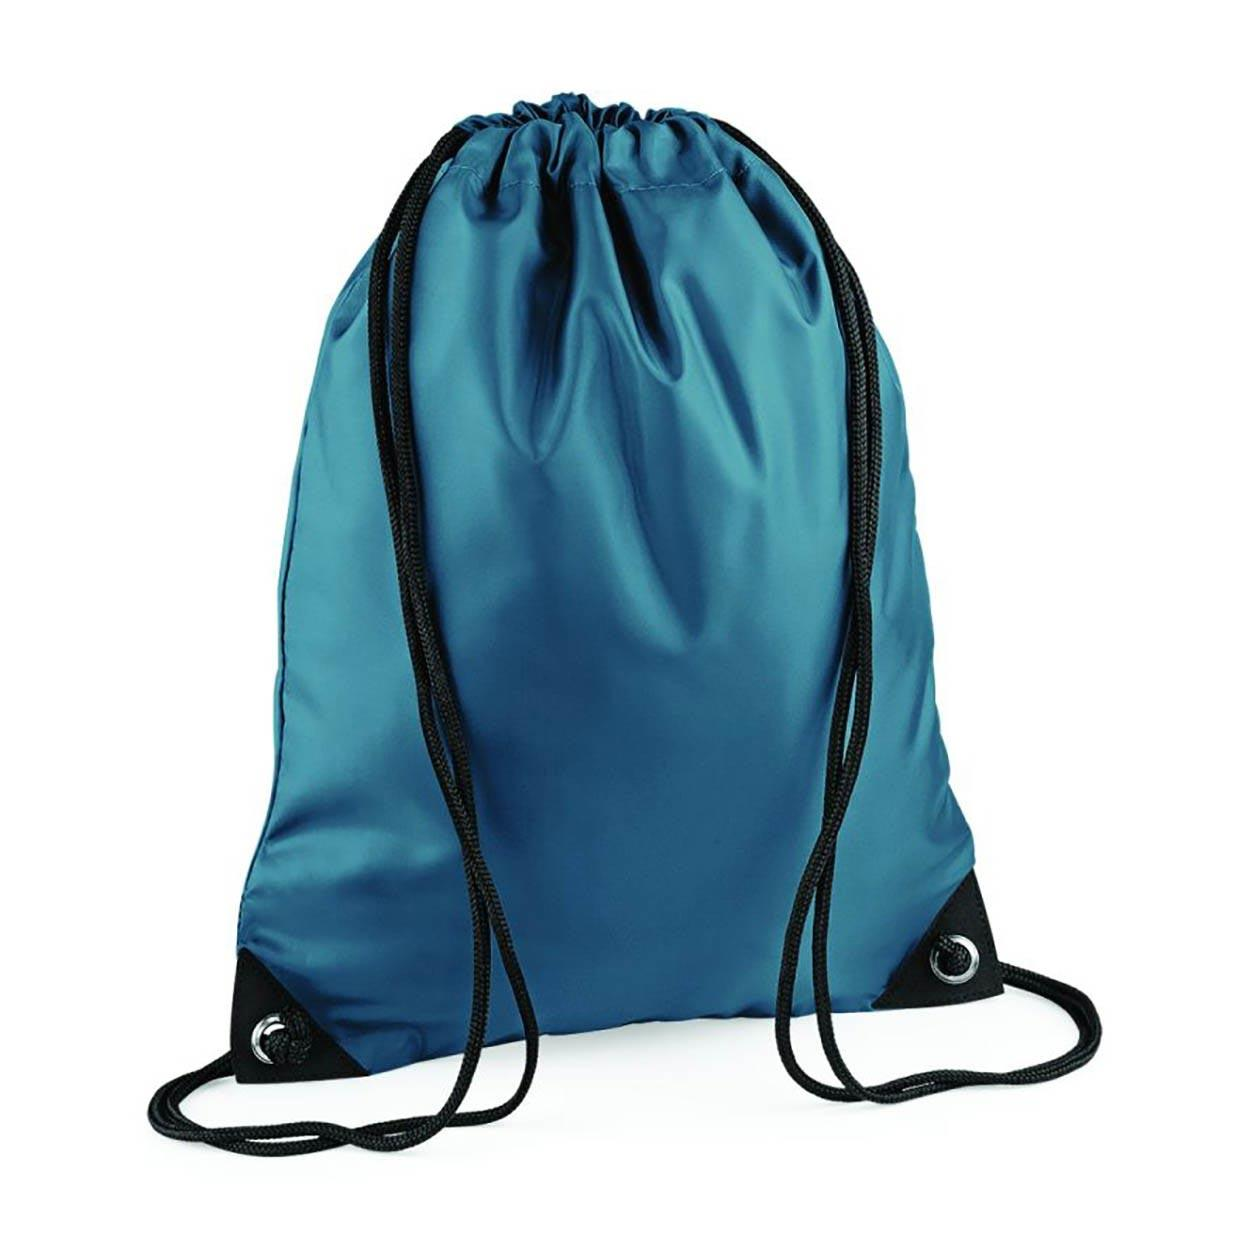 BG10 - Gym Sack